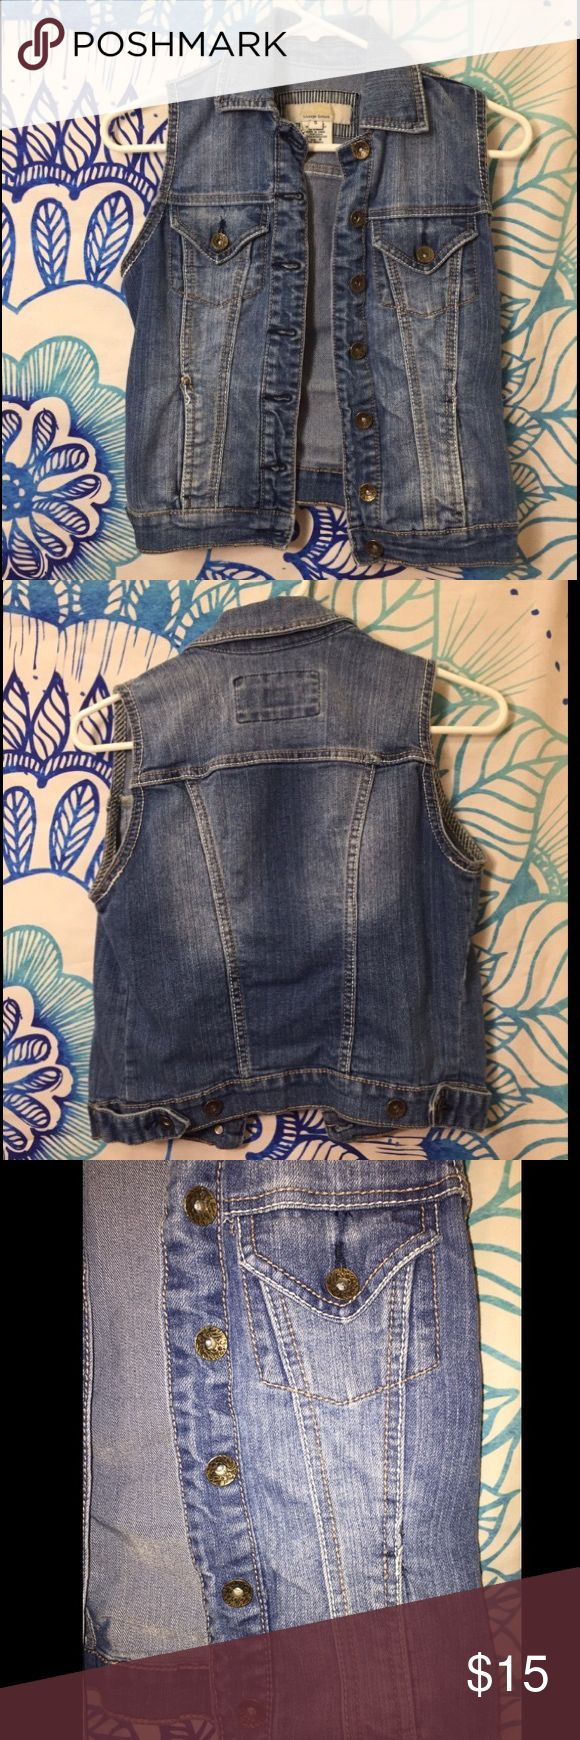 Vintage Sleeveless Jean Jacket with Pockets Posting a lot of items - Descriptions coming soon! Check back in a few days Forever 21 Jackets & Coats Jean Jackets